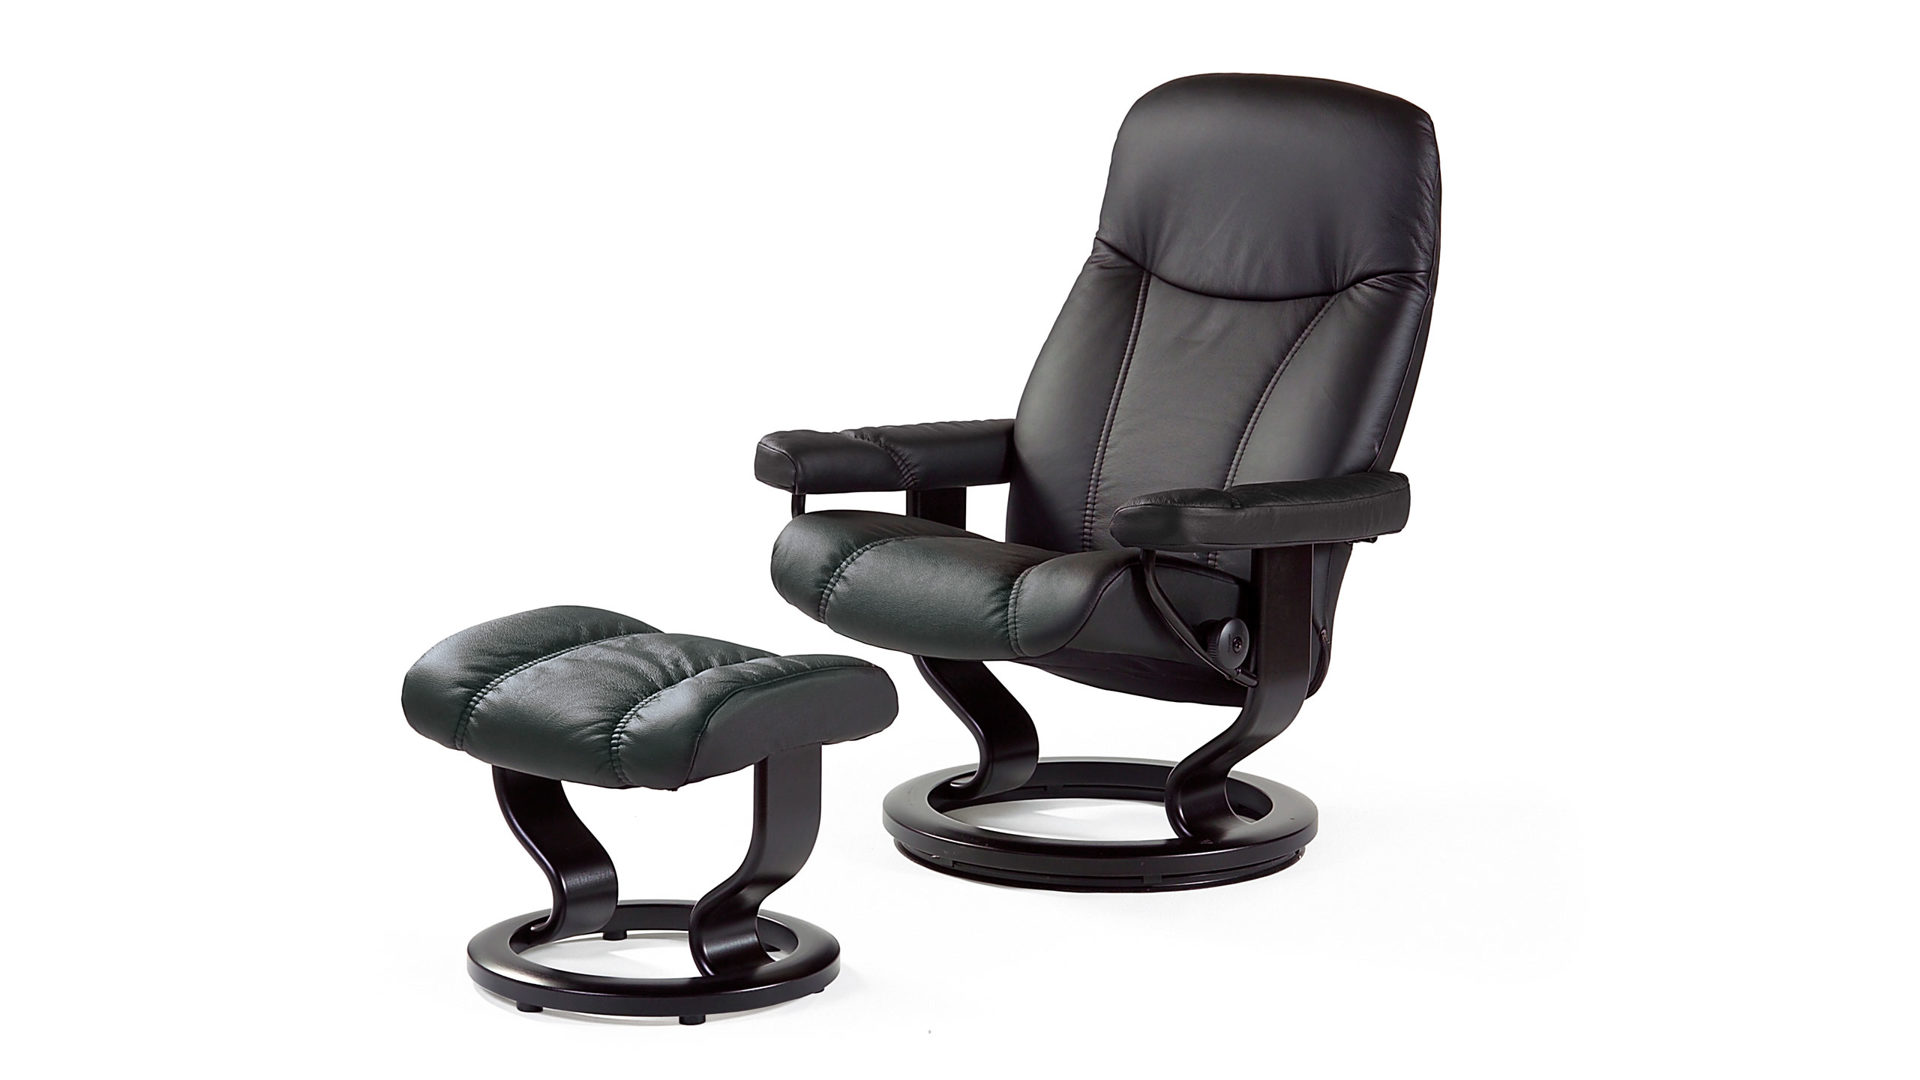 Sessel M Stressless Consul M Relax Sessel Und Hocker Leder Medium Leder